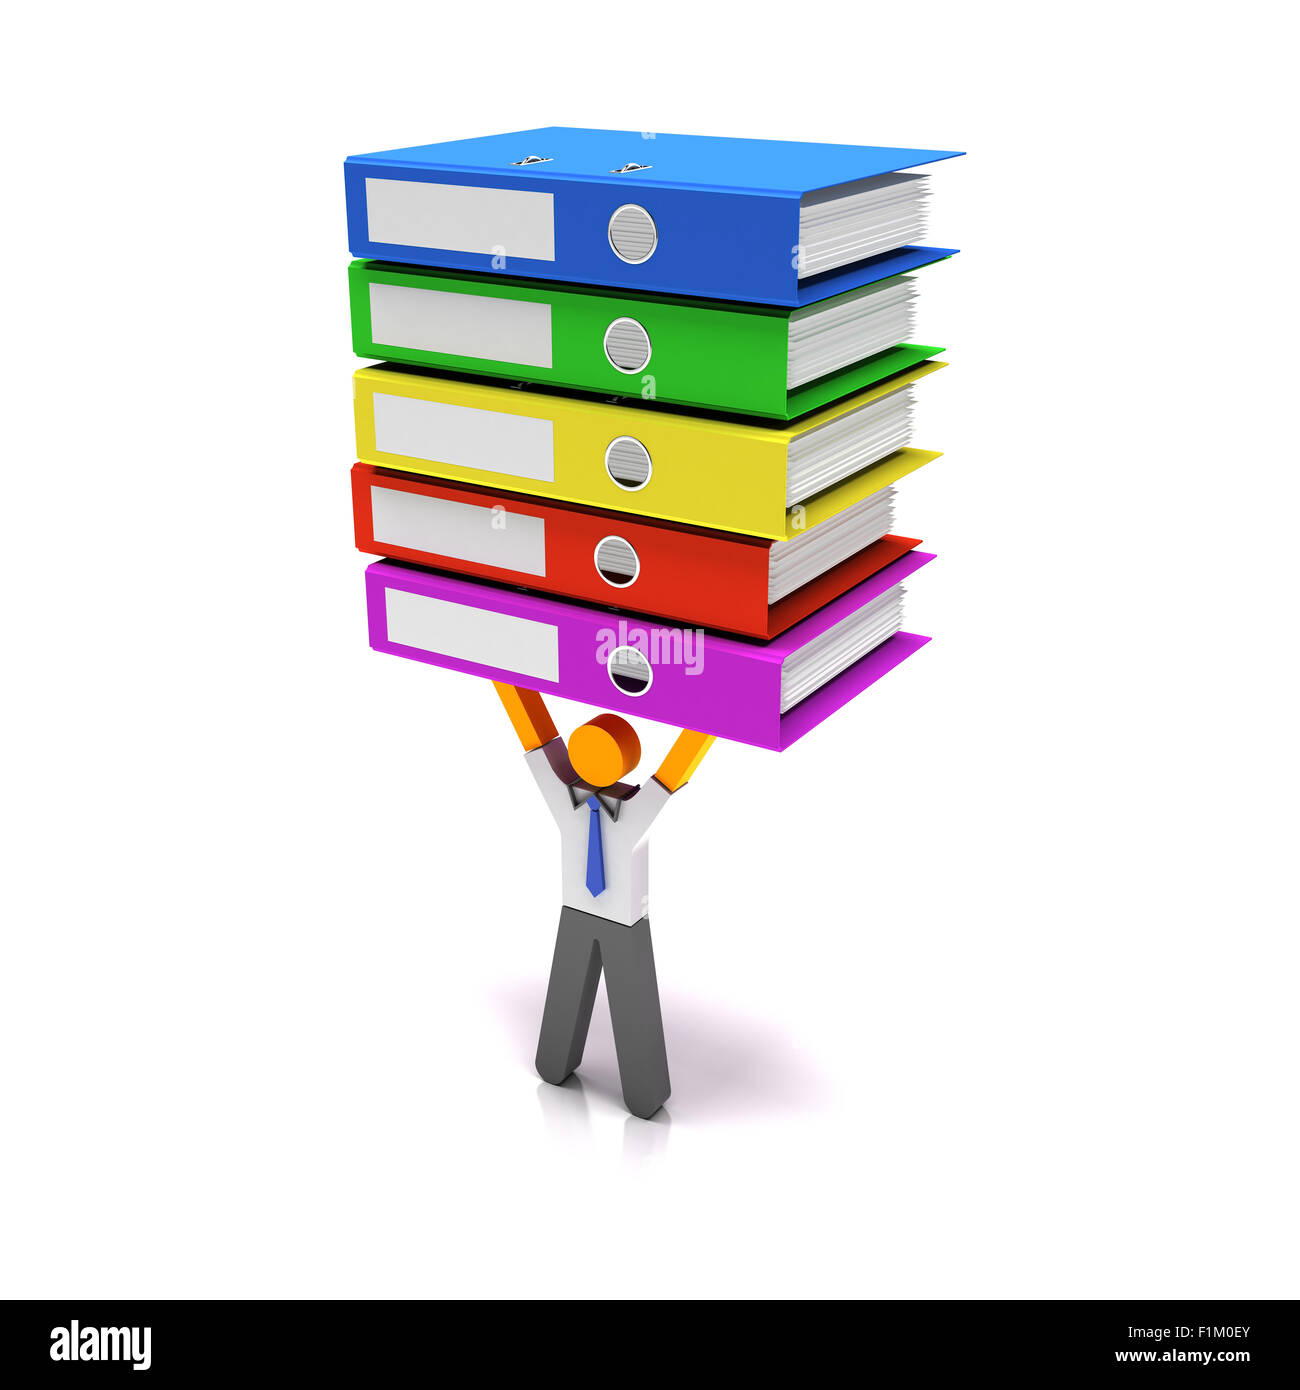 Heavy workload - Stock Image